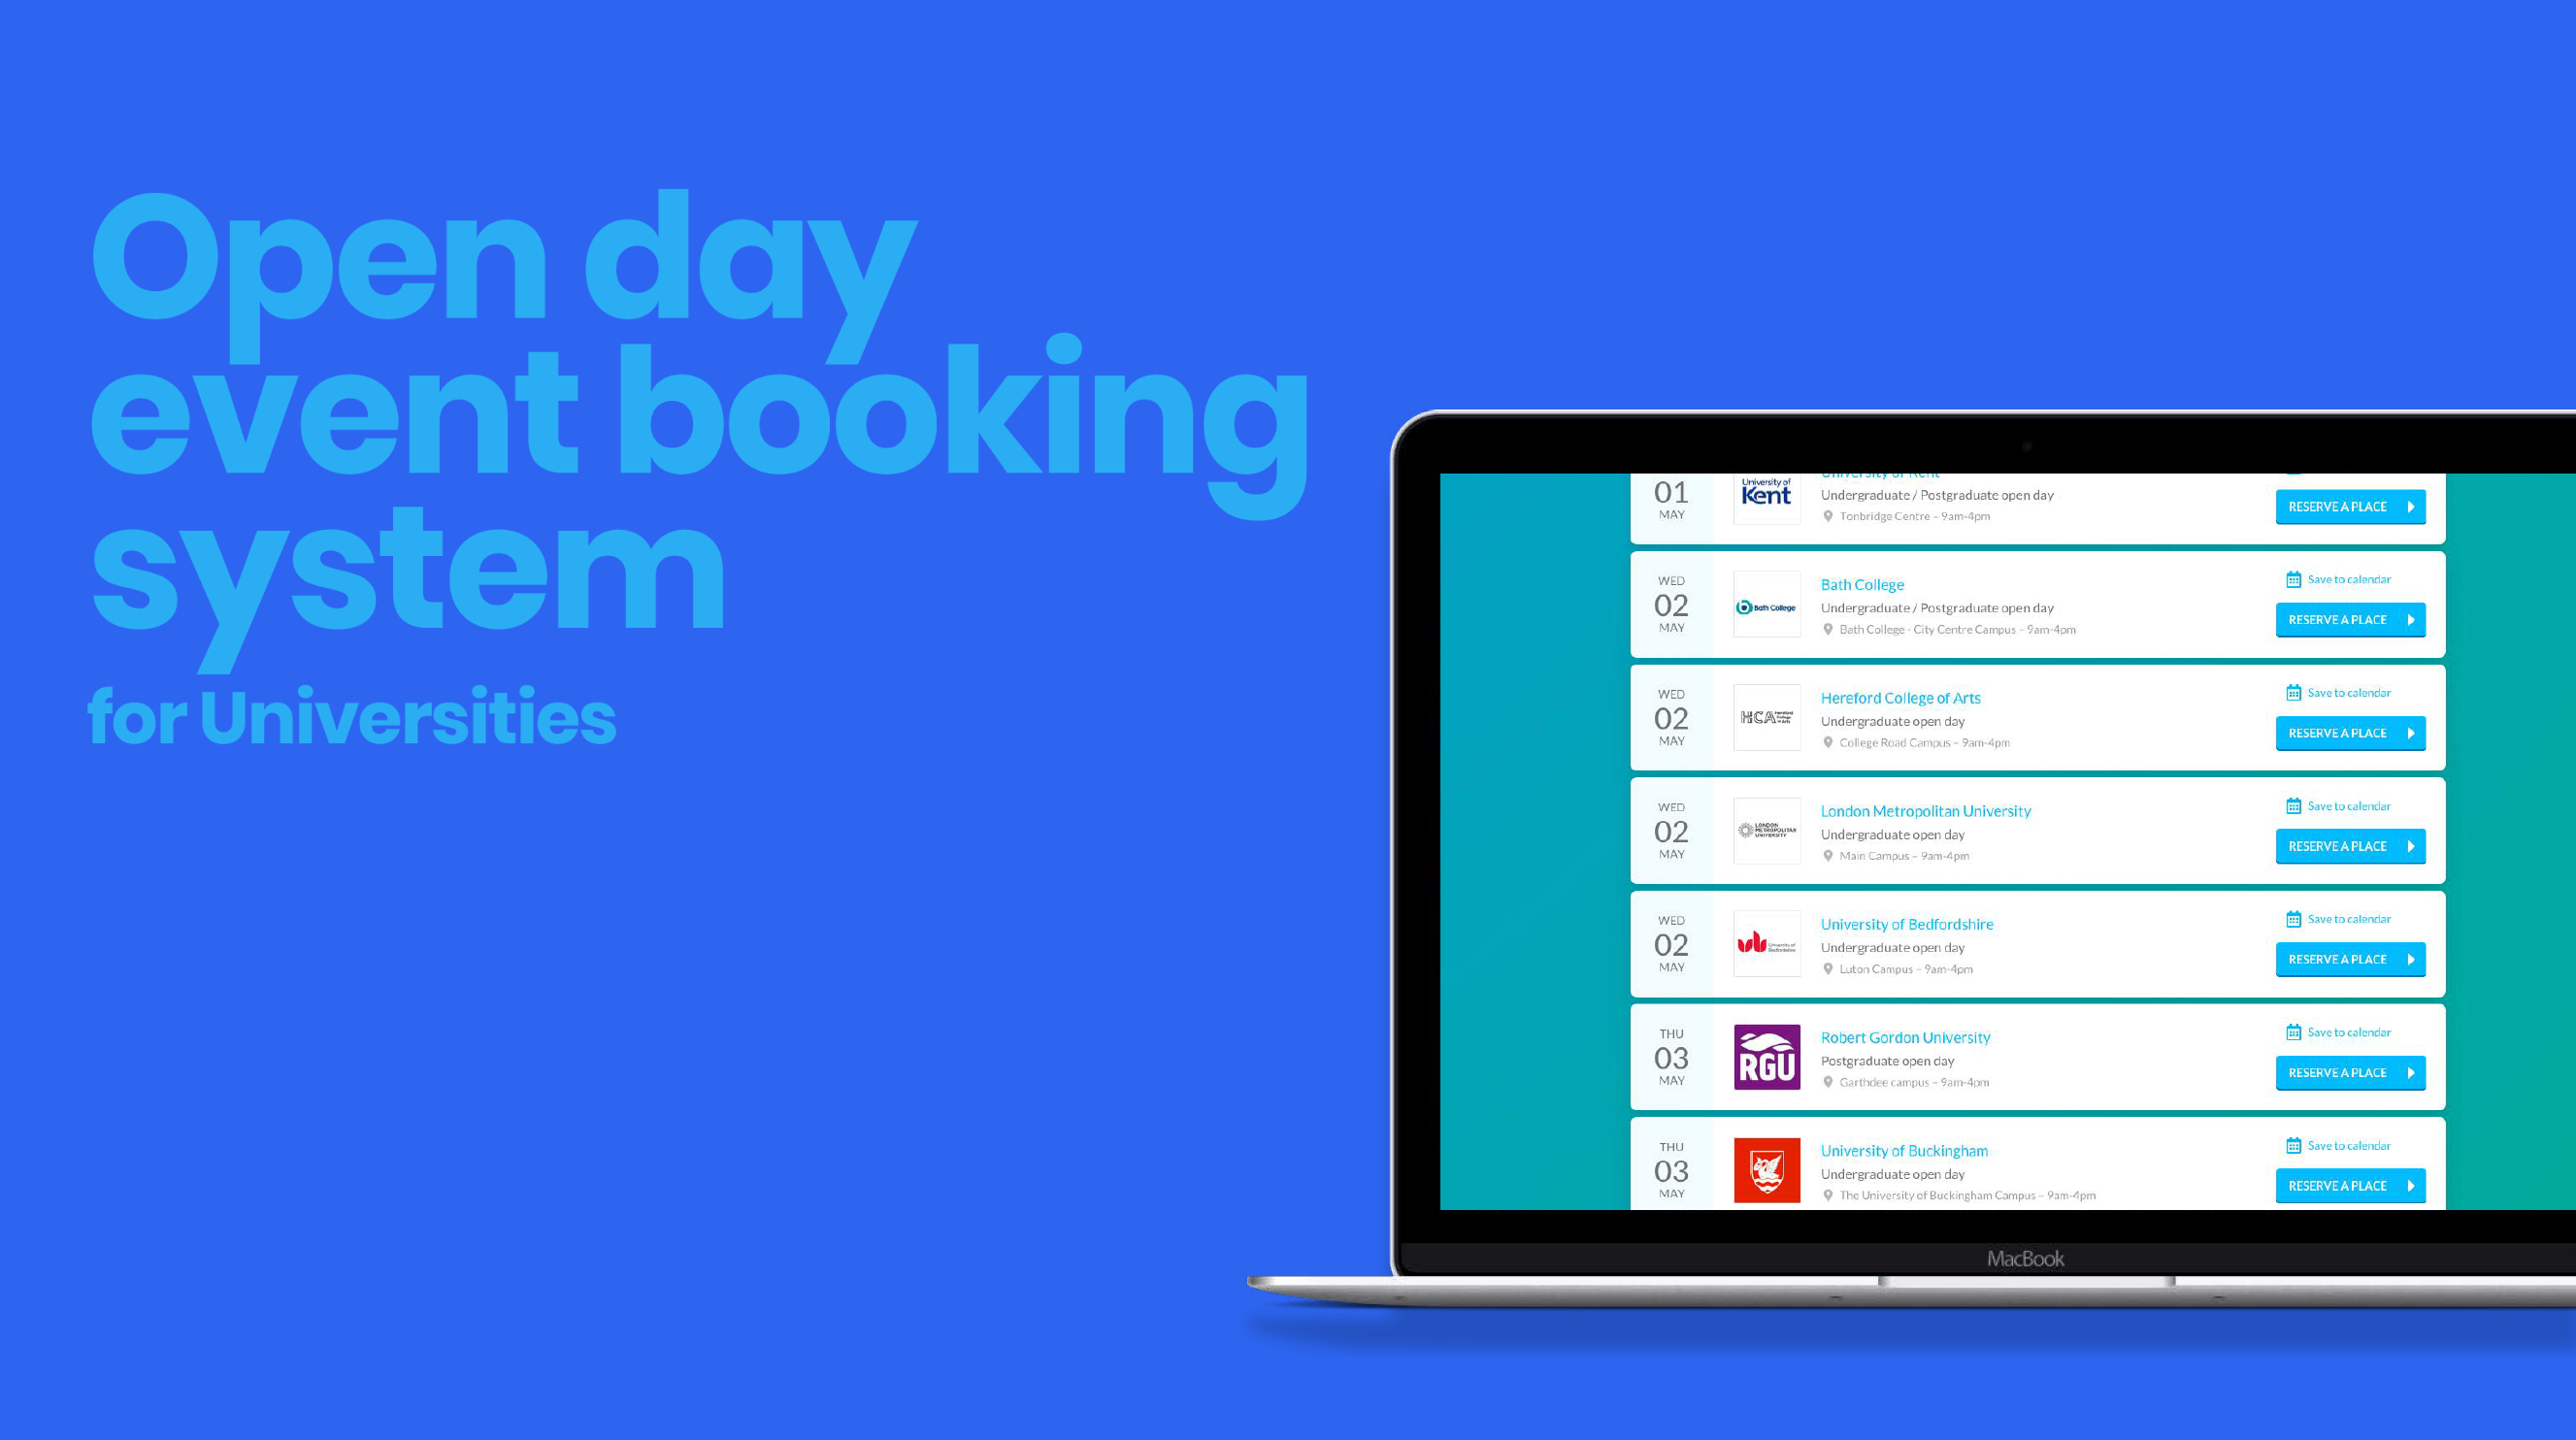 Open day event booking system for Universities